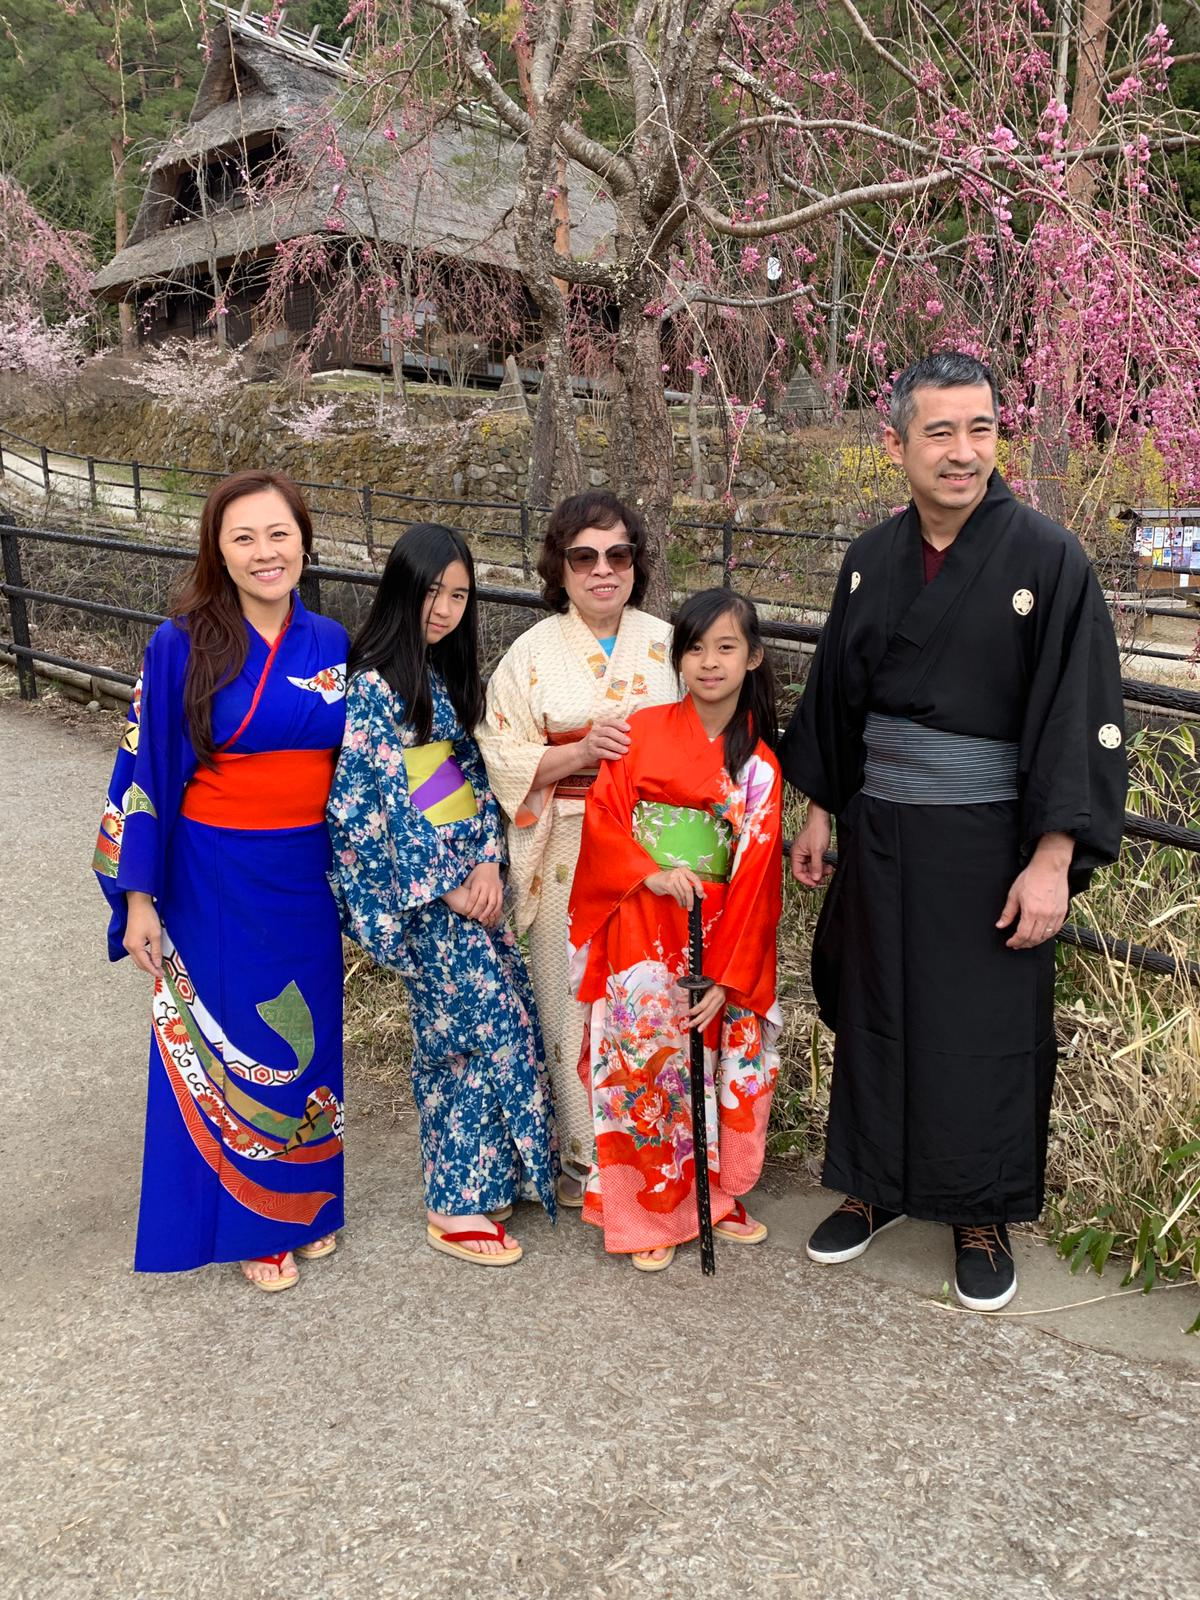 Family wearing Japanese yukata.